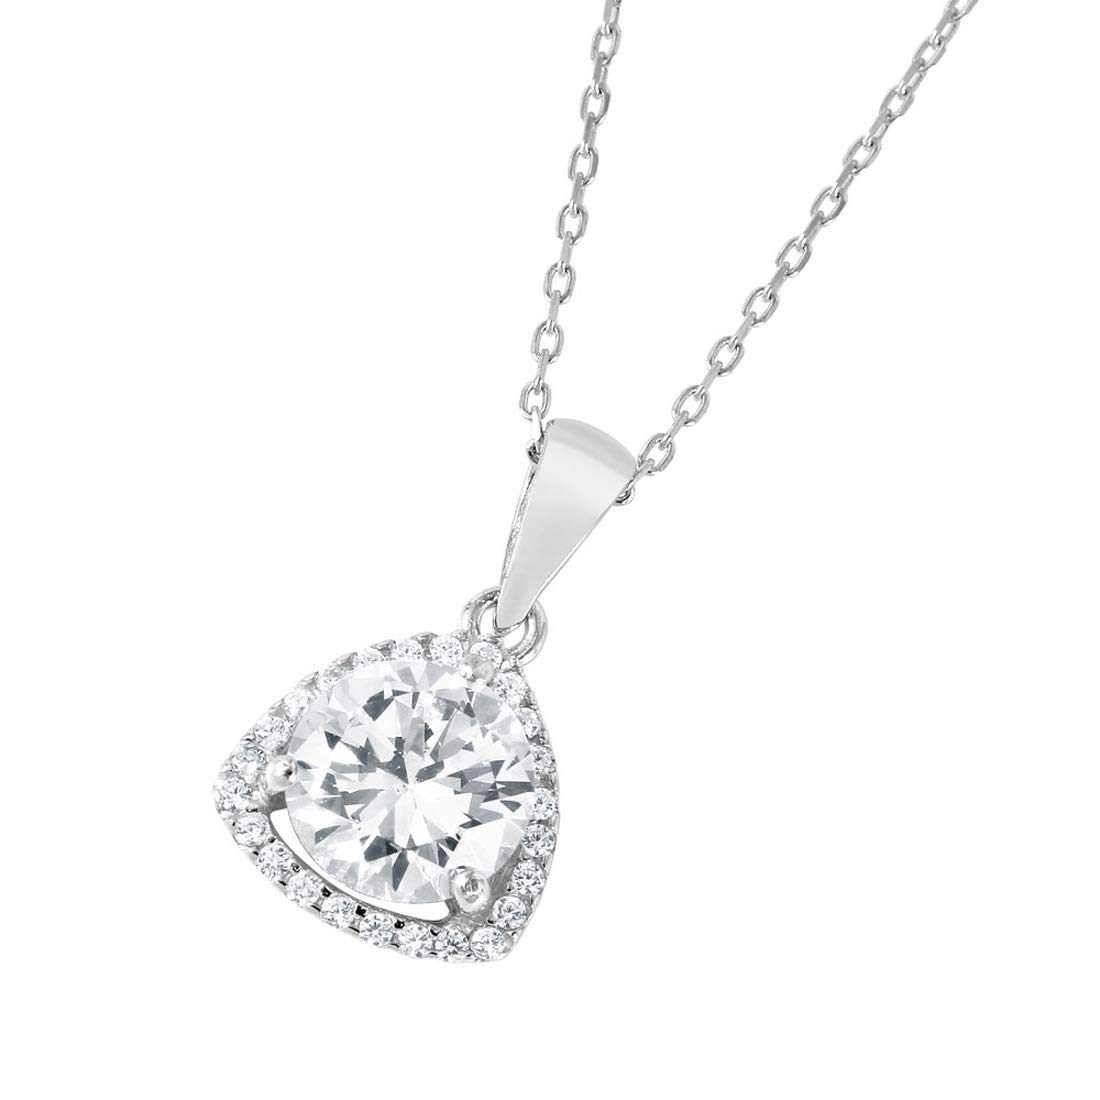 Jewelry Pilot Sterling Silver Prong Set Round Cubic Zirconia CZ Center Charm Pendant Necklace